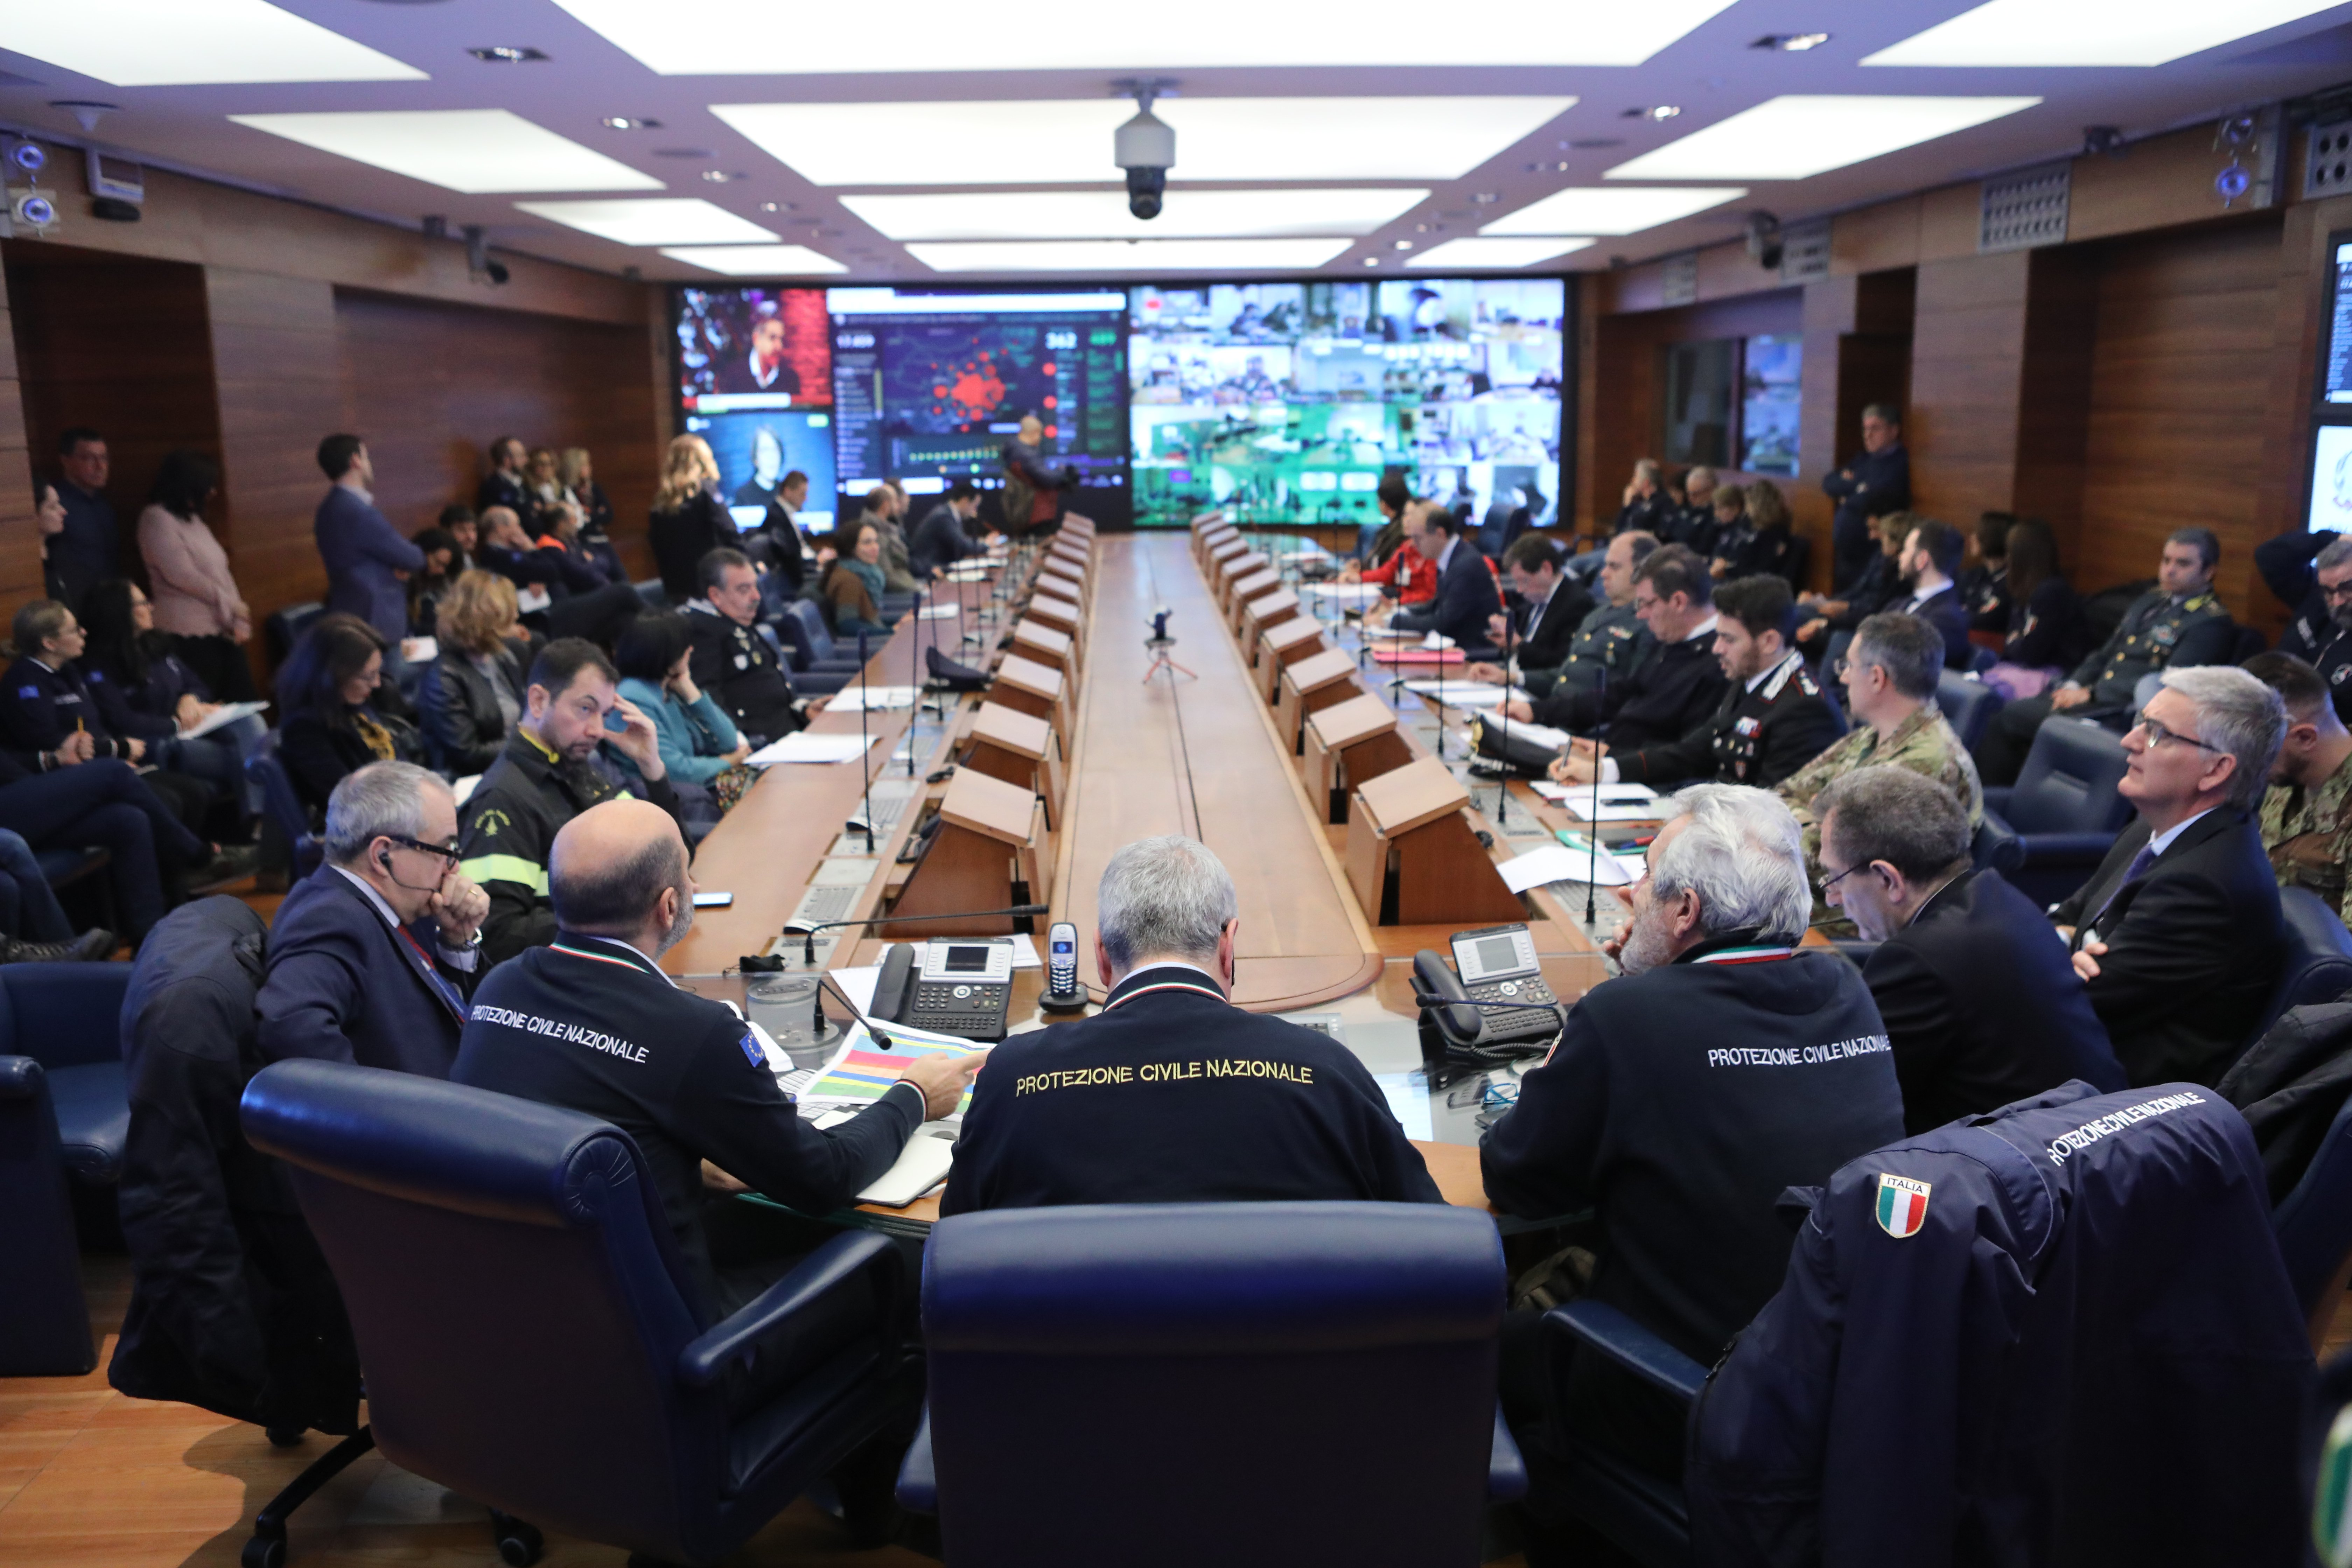 Officials gather in Rome in response to the coronavirus outbreak. Photo: Dipartimento Protezione Civile (CC BY 2.0).